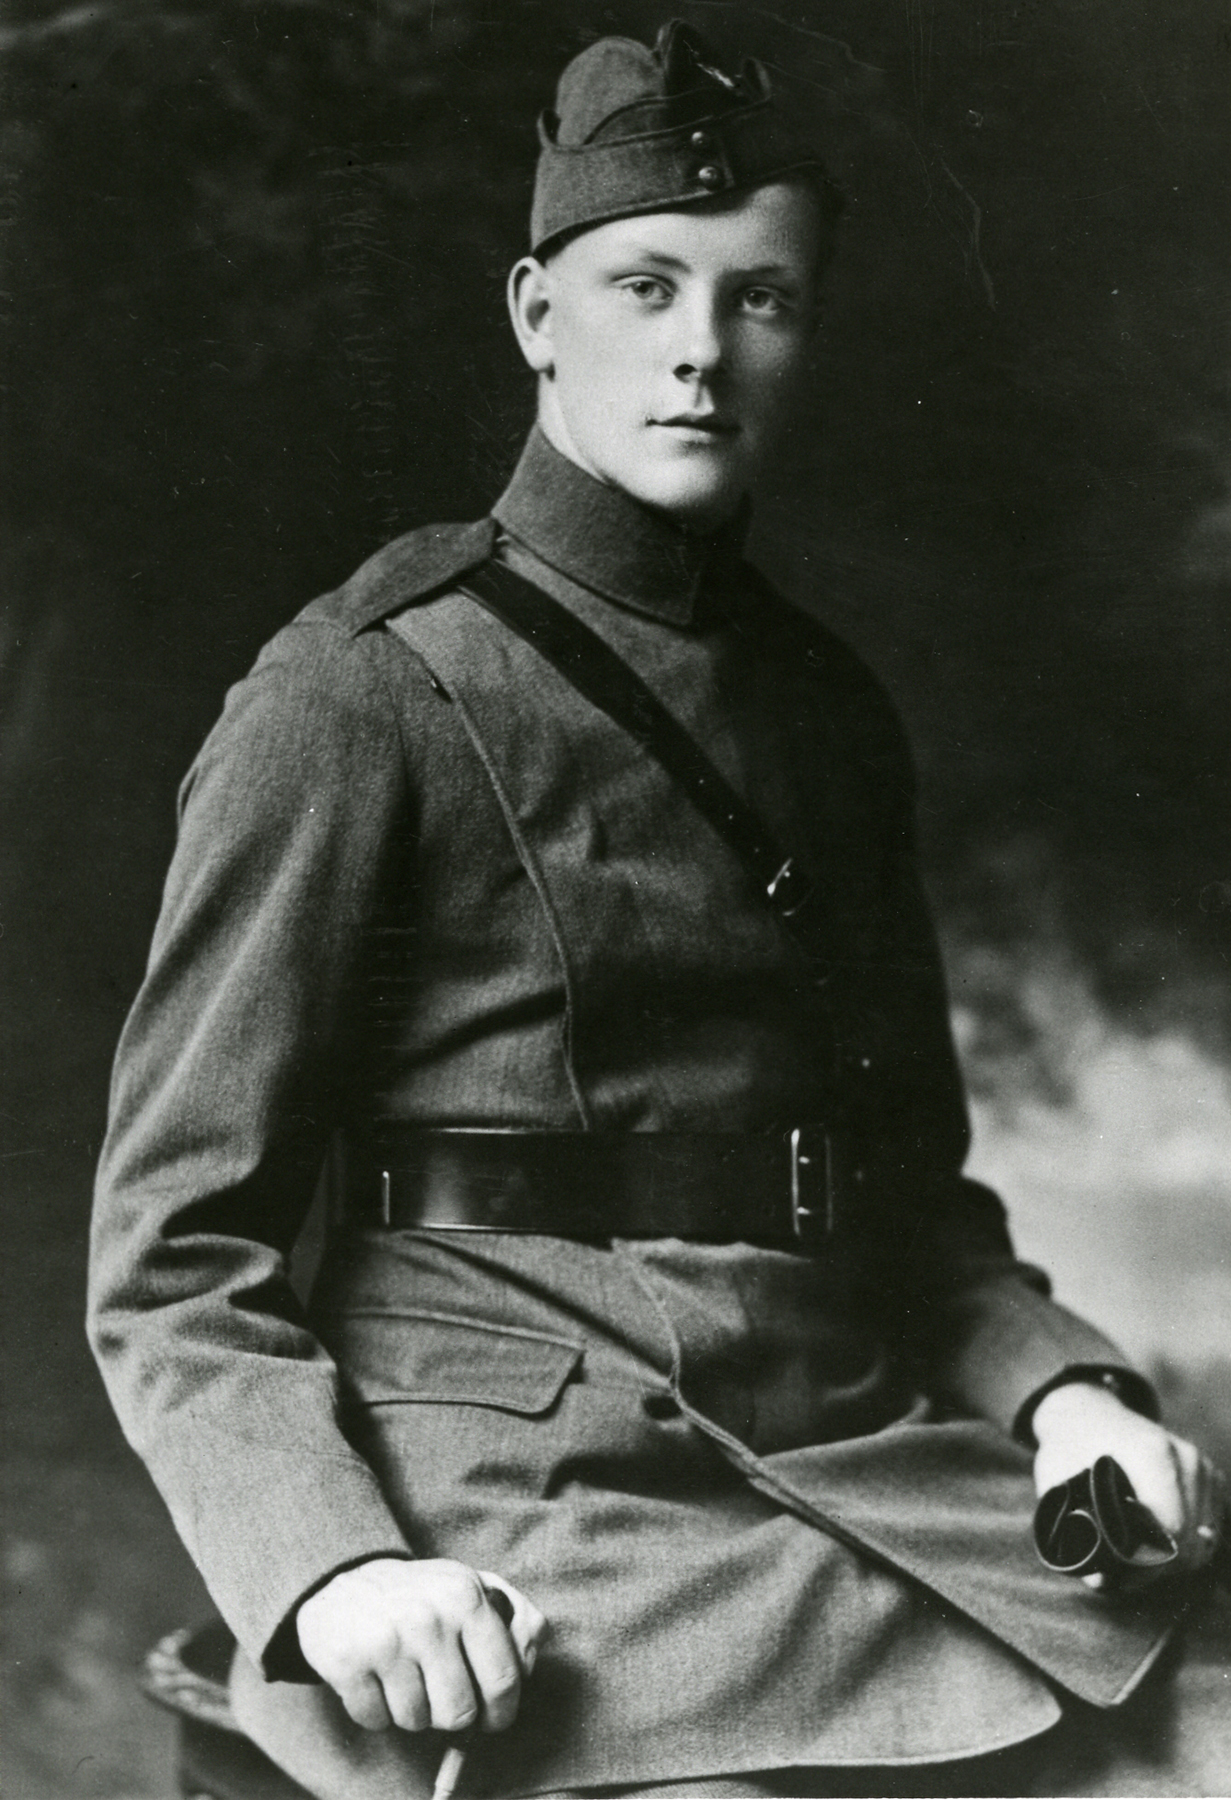 An old black and white photograph of a young man, seated, wearing a military uniform